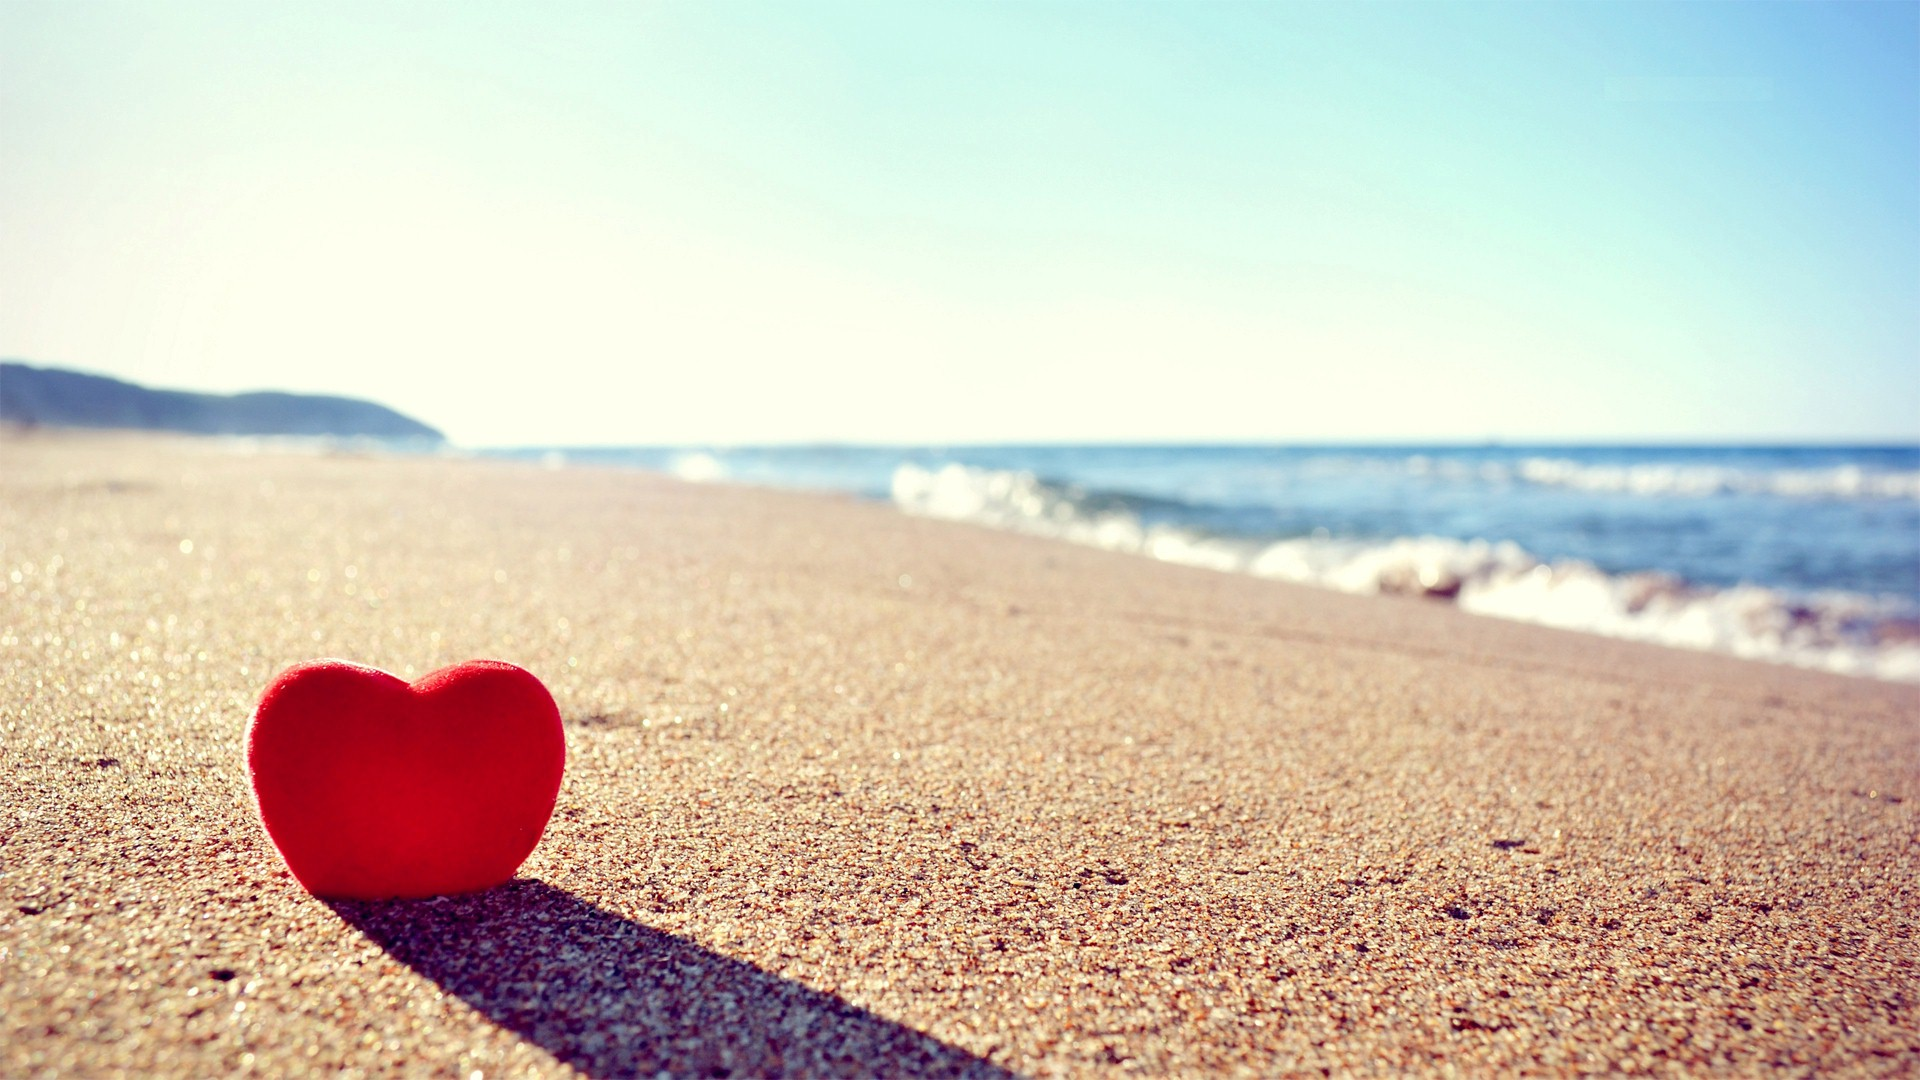 Love Hd Wallpapers For Free